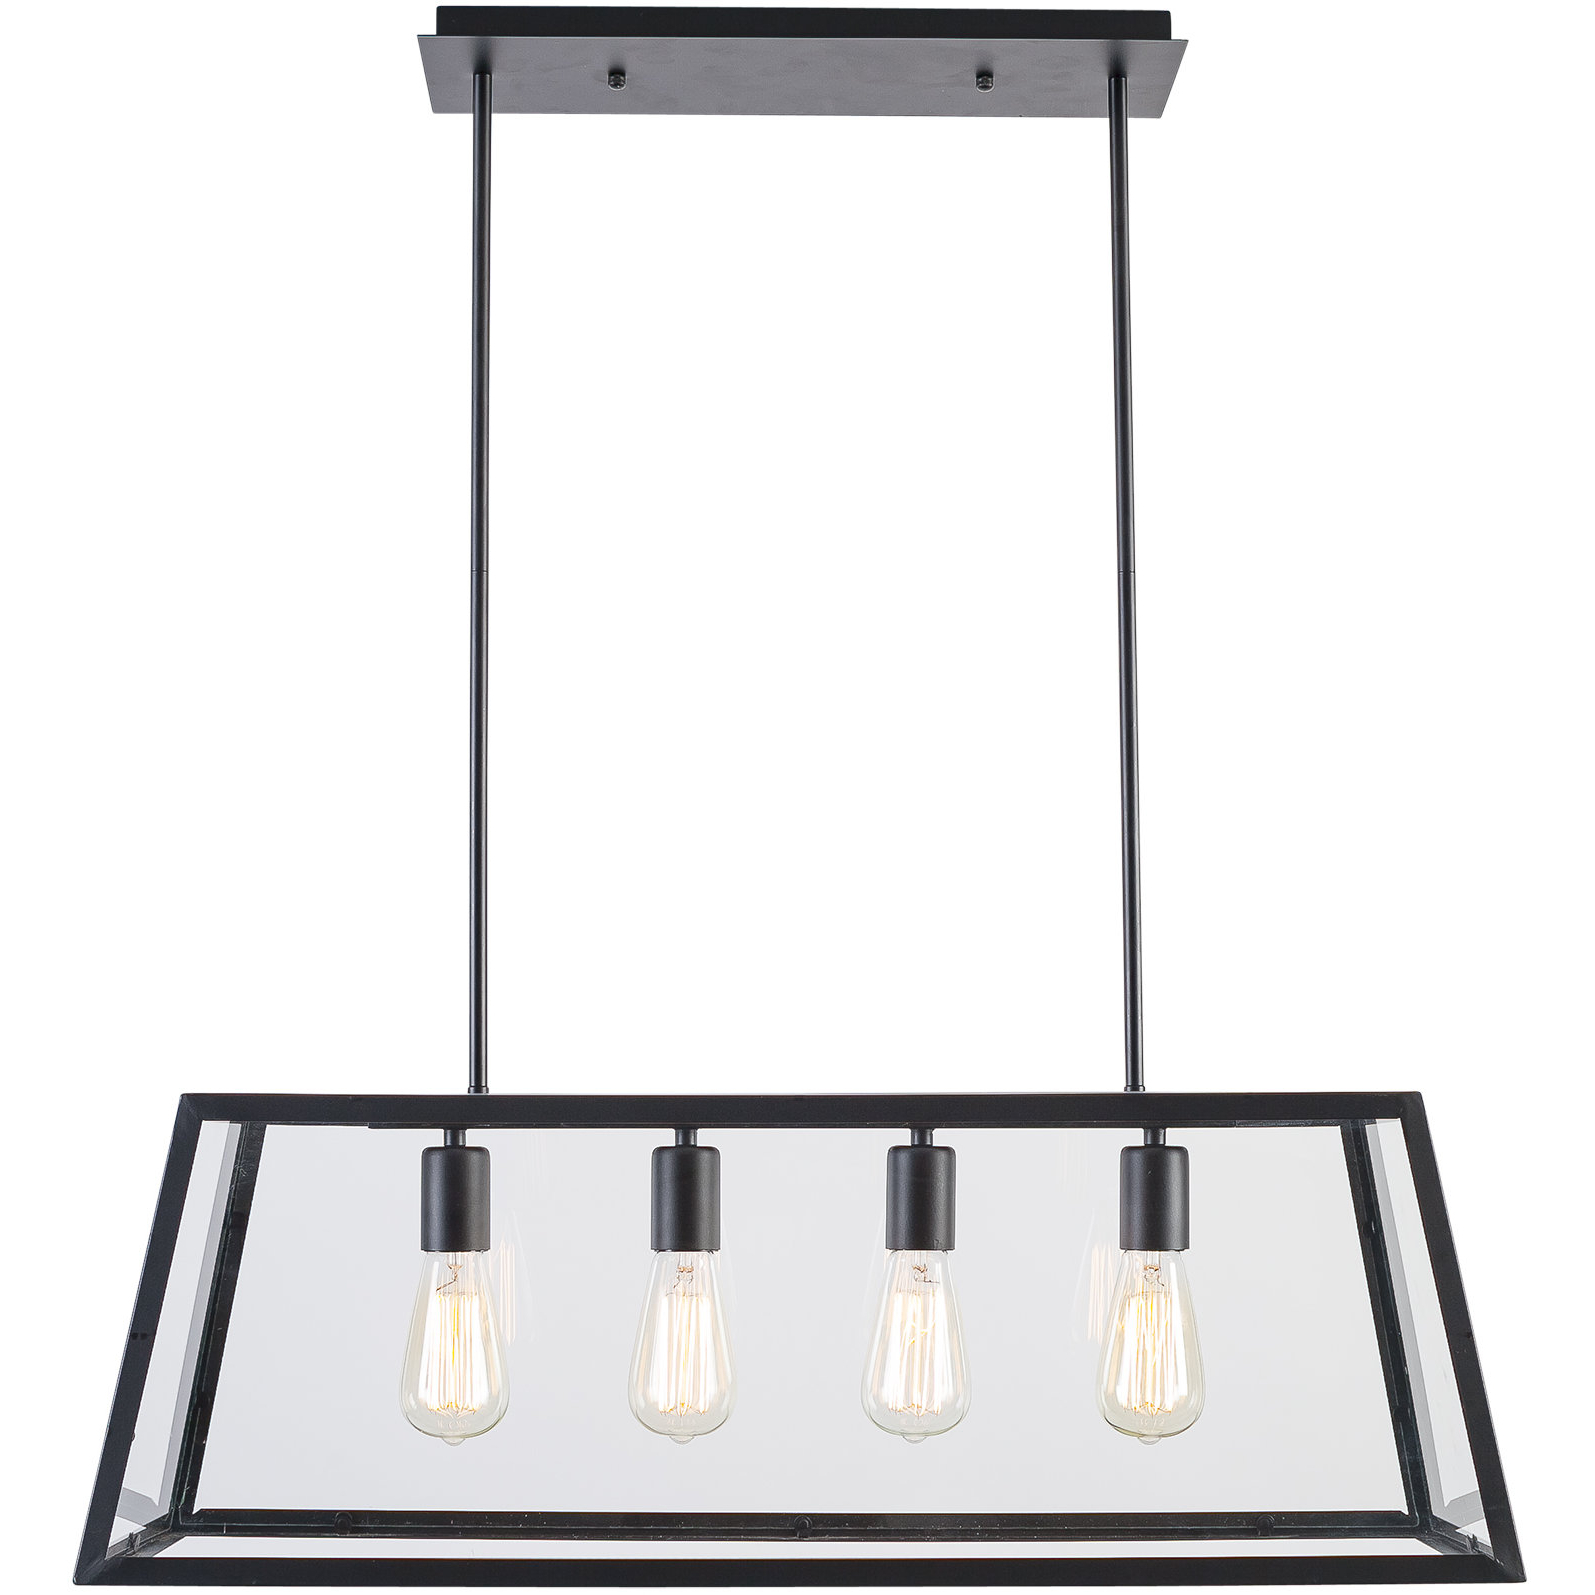 Wayfair With Regard To Schutt 4 Light Kitchen Island Pendants (View 5 of 25)